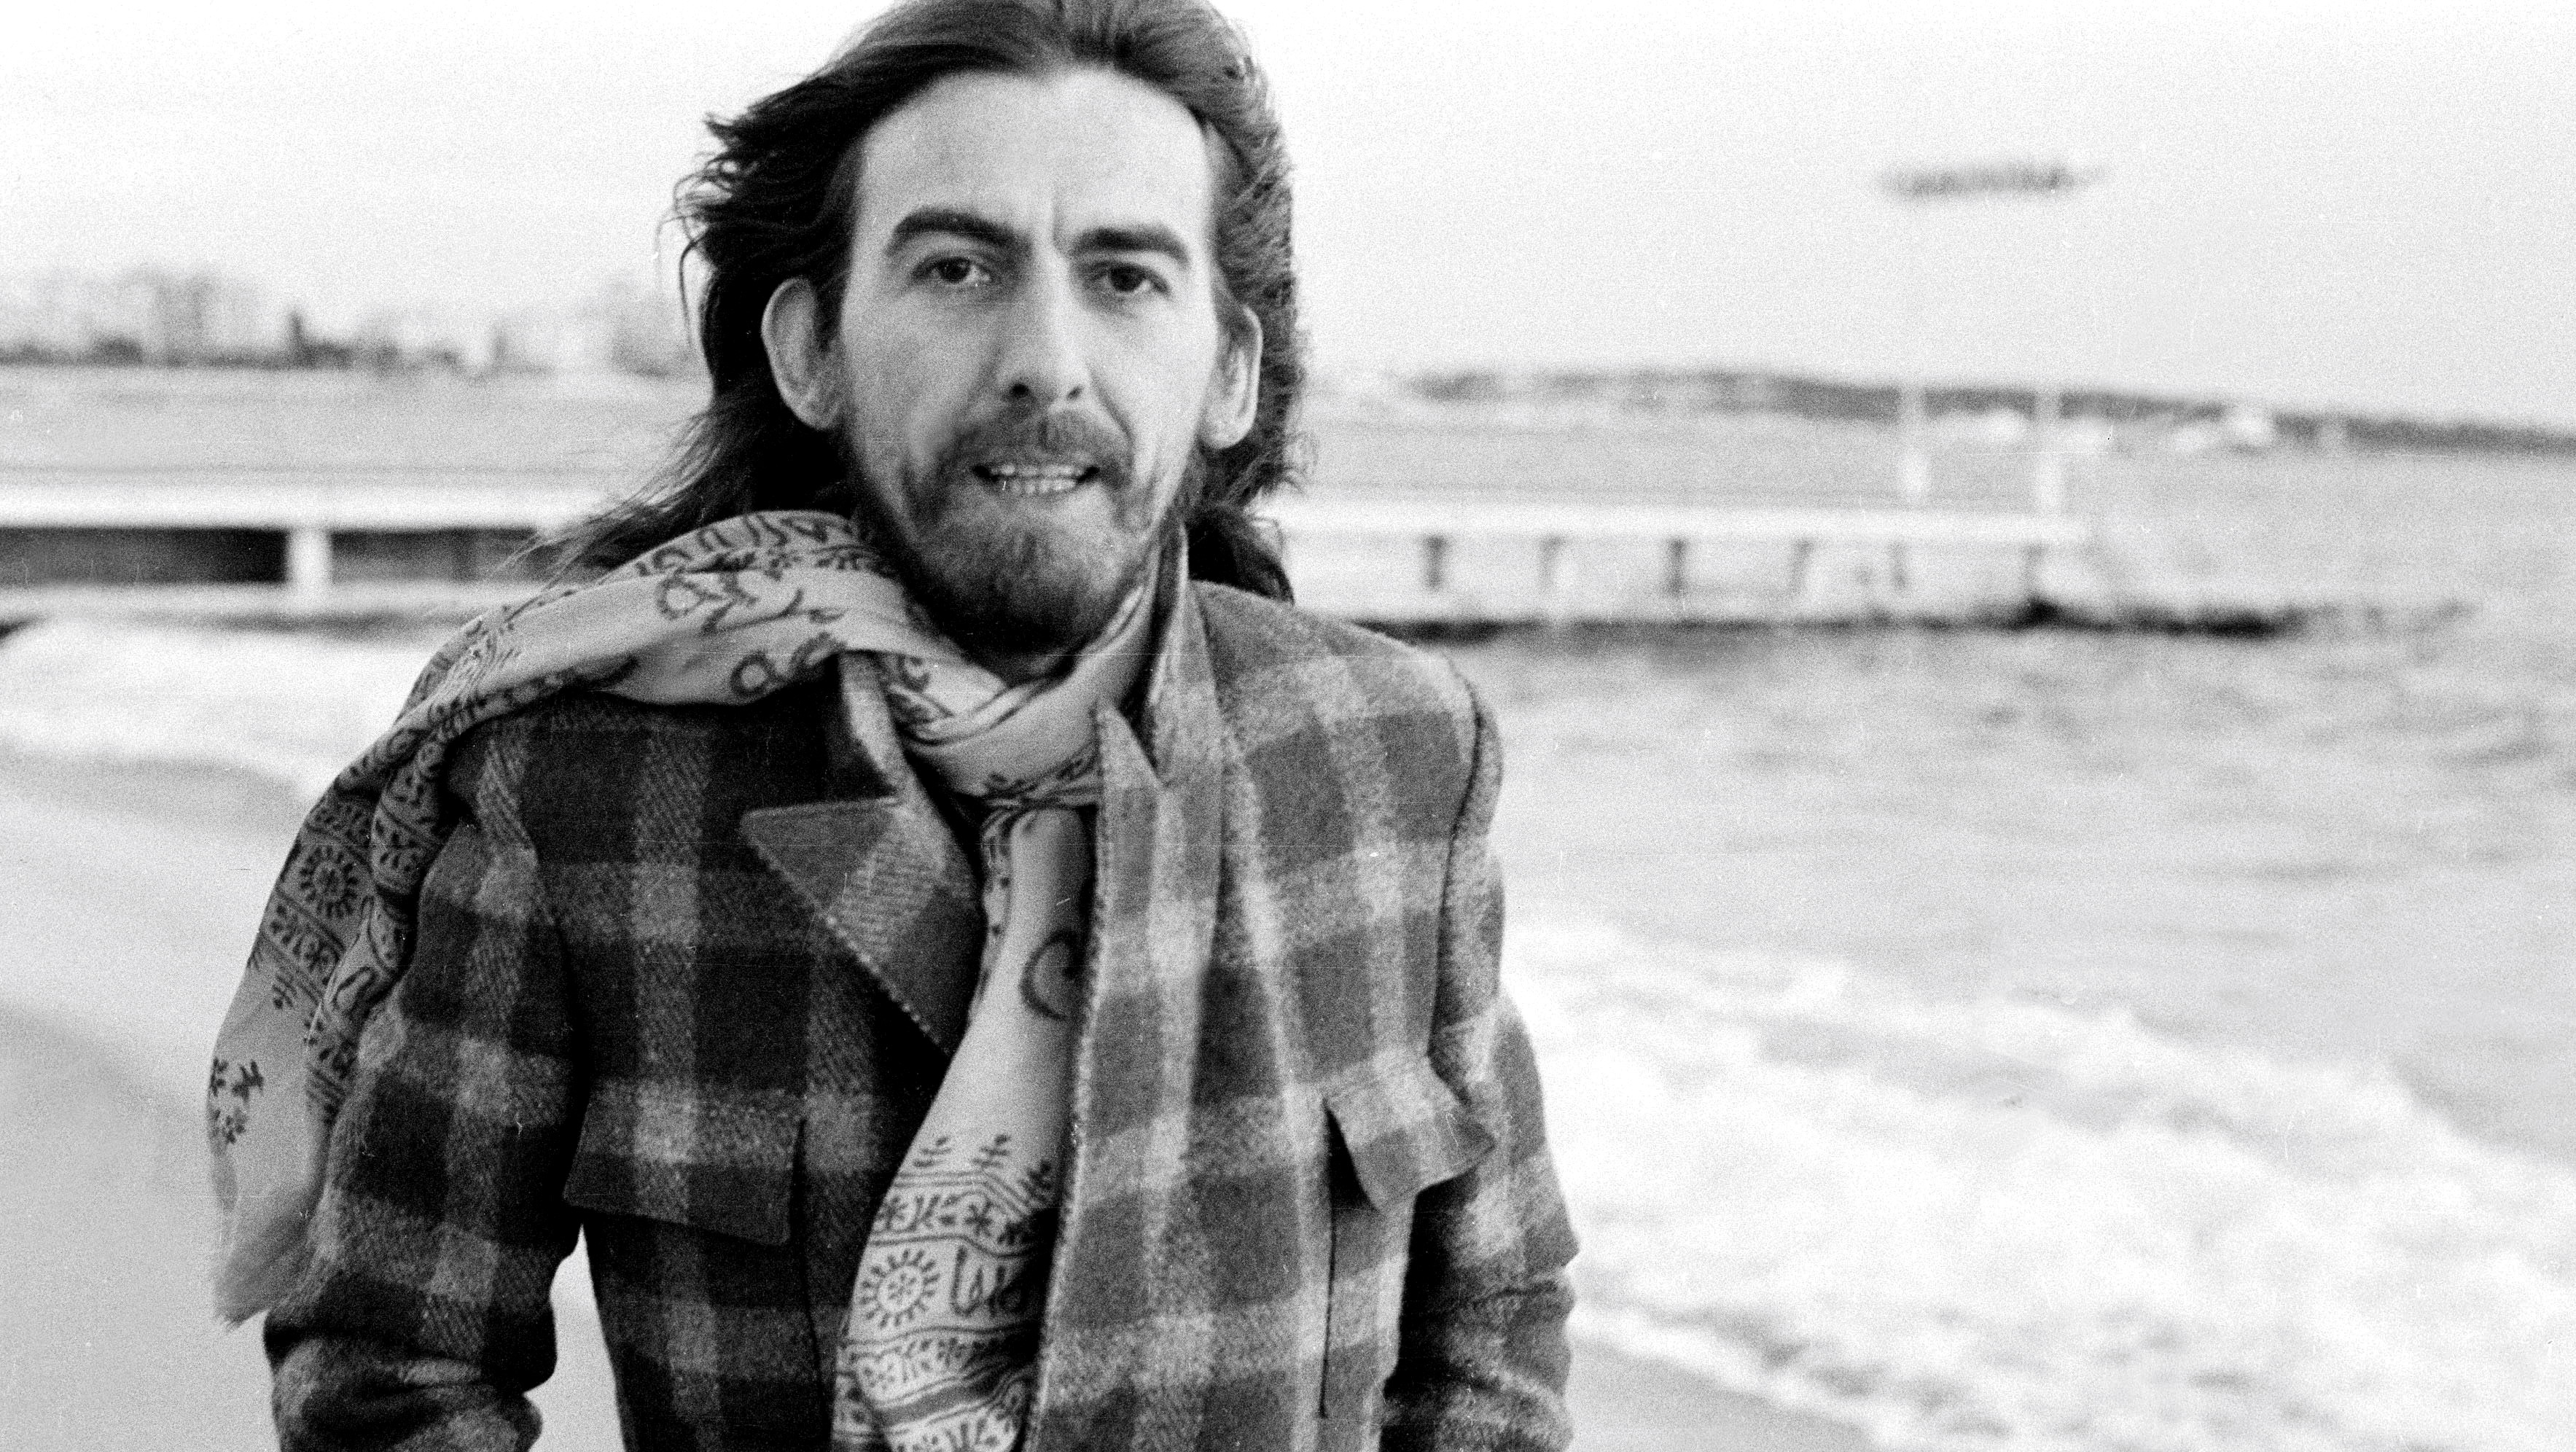 Former Beatle George Harrison (1943 - 2001) on the beach at Cannes, France in 1976. (Photo by Michael Putland/Getty Images)